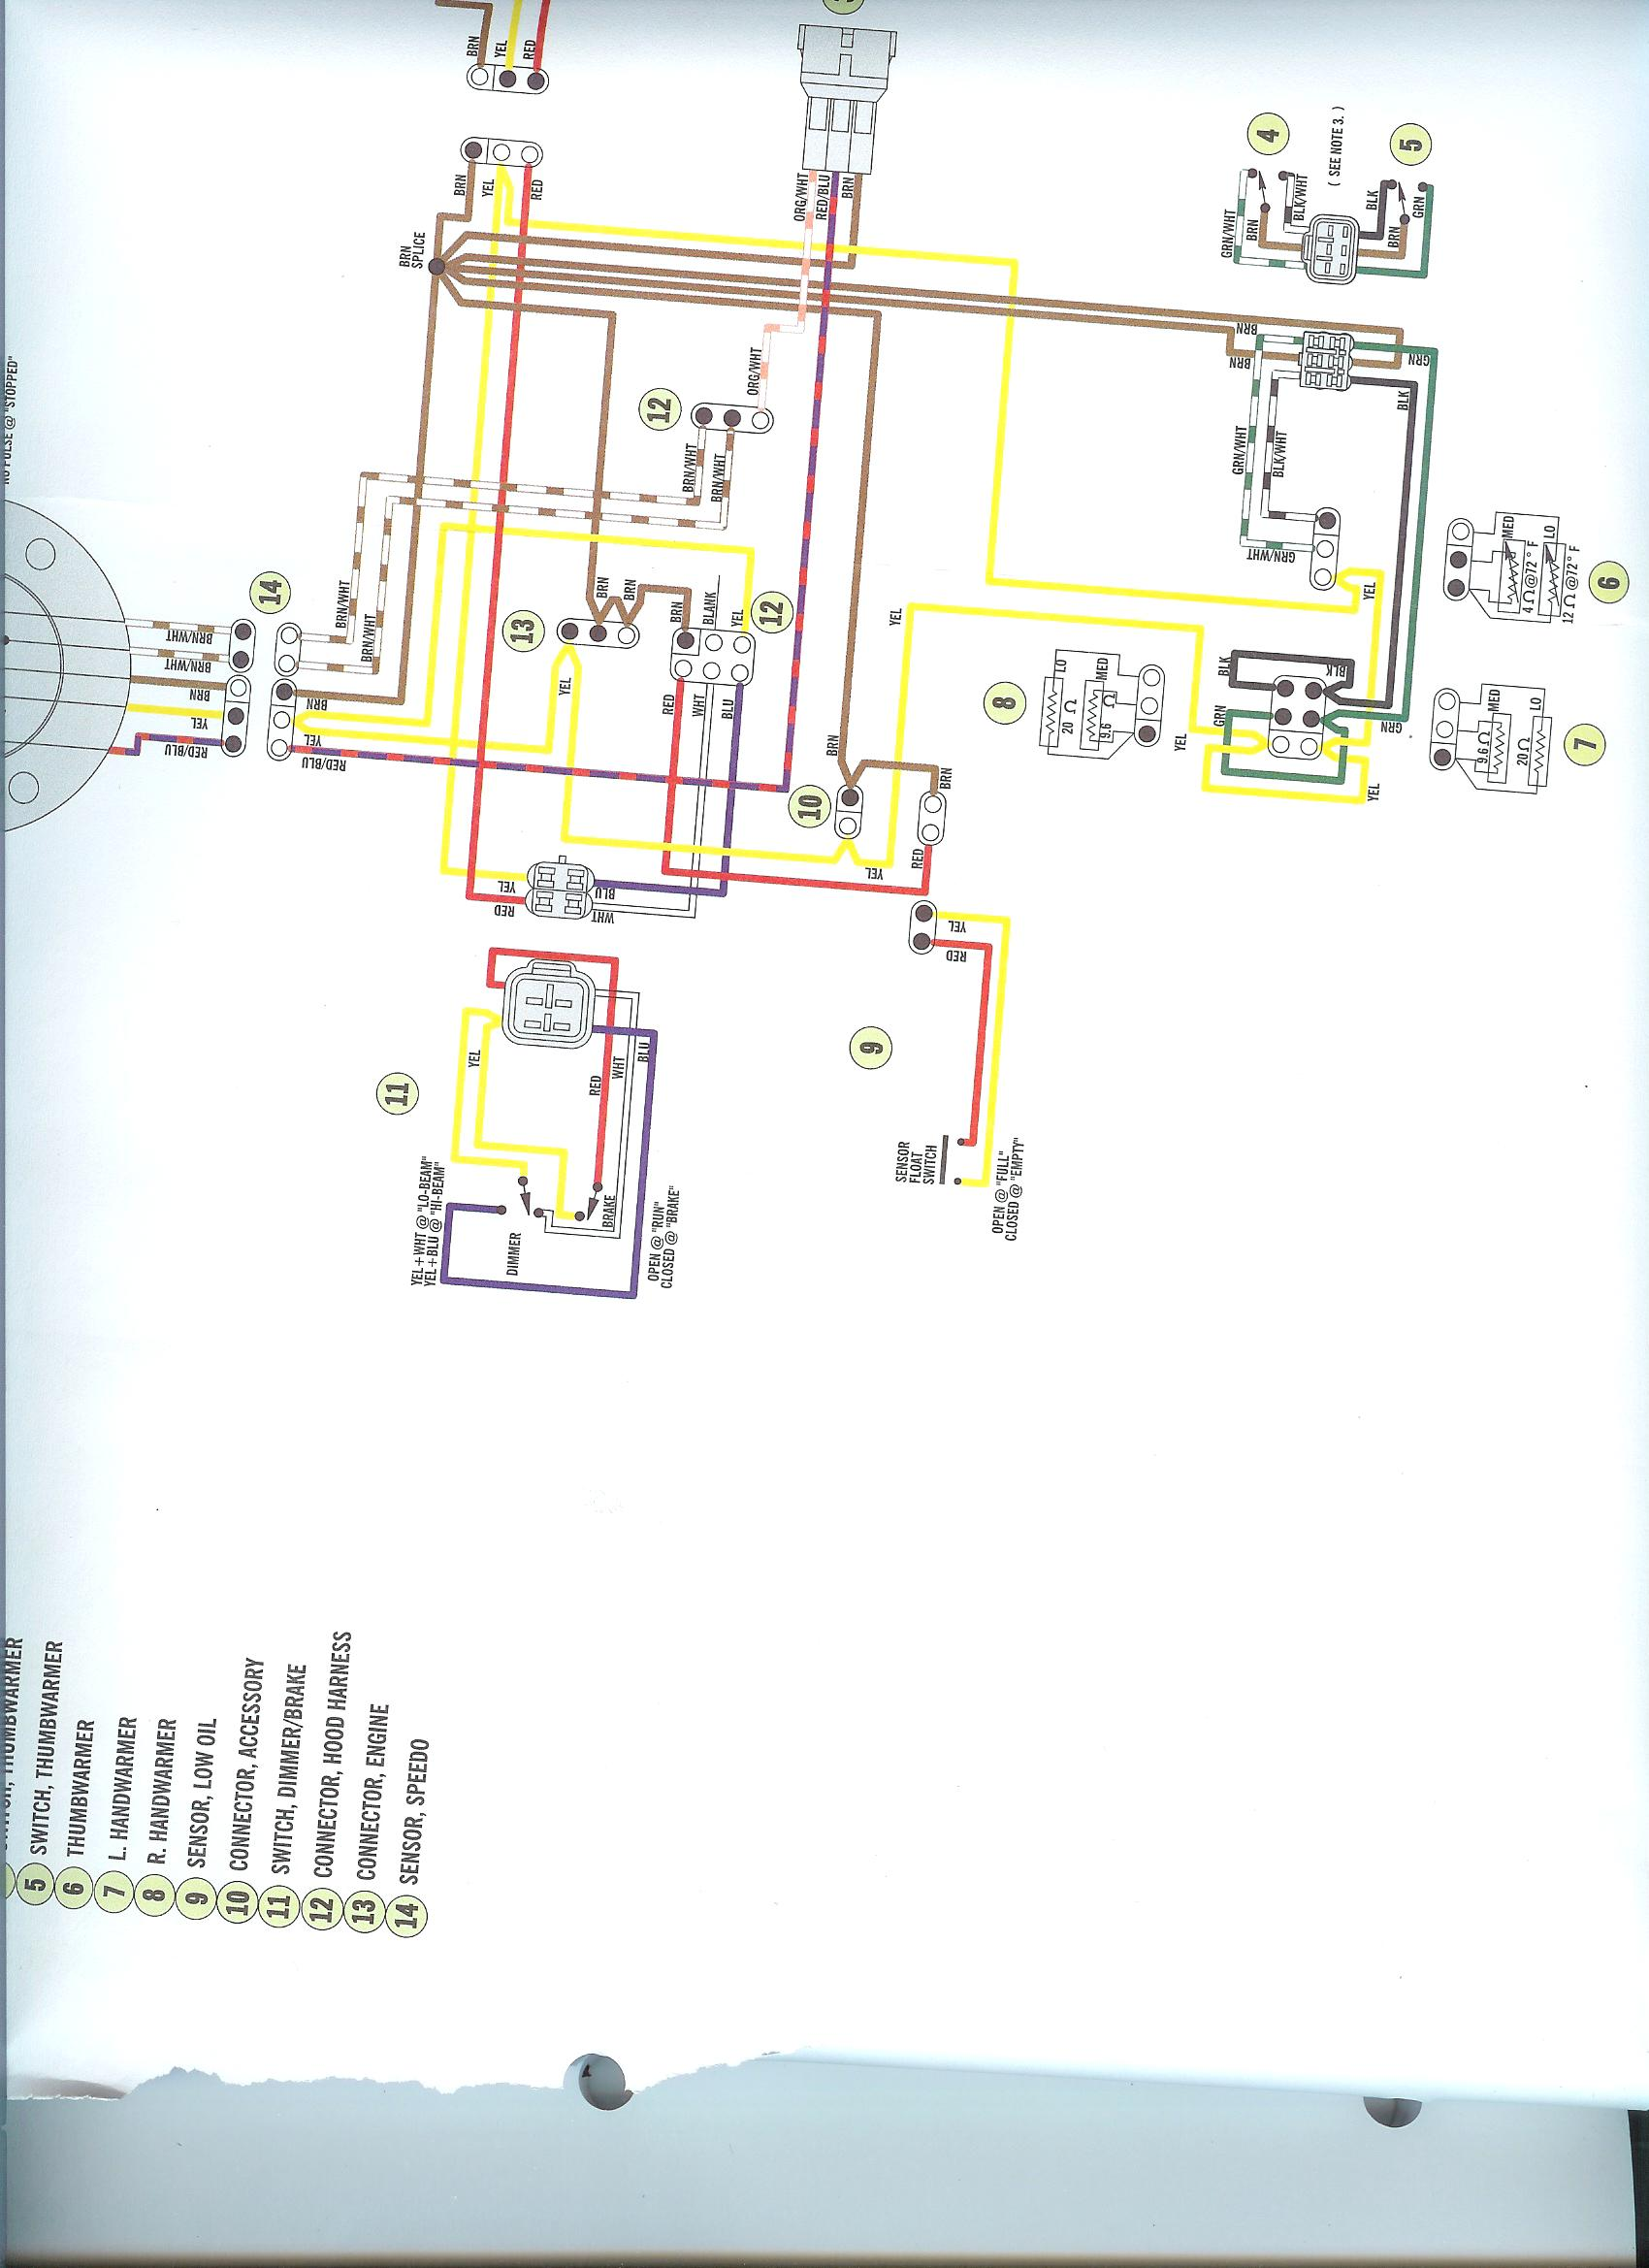 Hand Warmer Wiring Diagram Arctic Cat Snowmobile - Wiring ... on